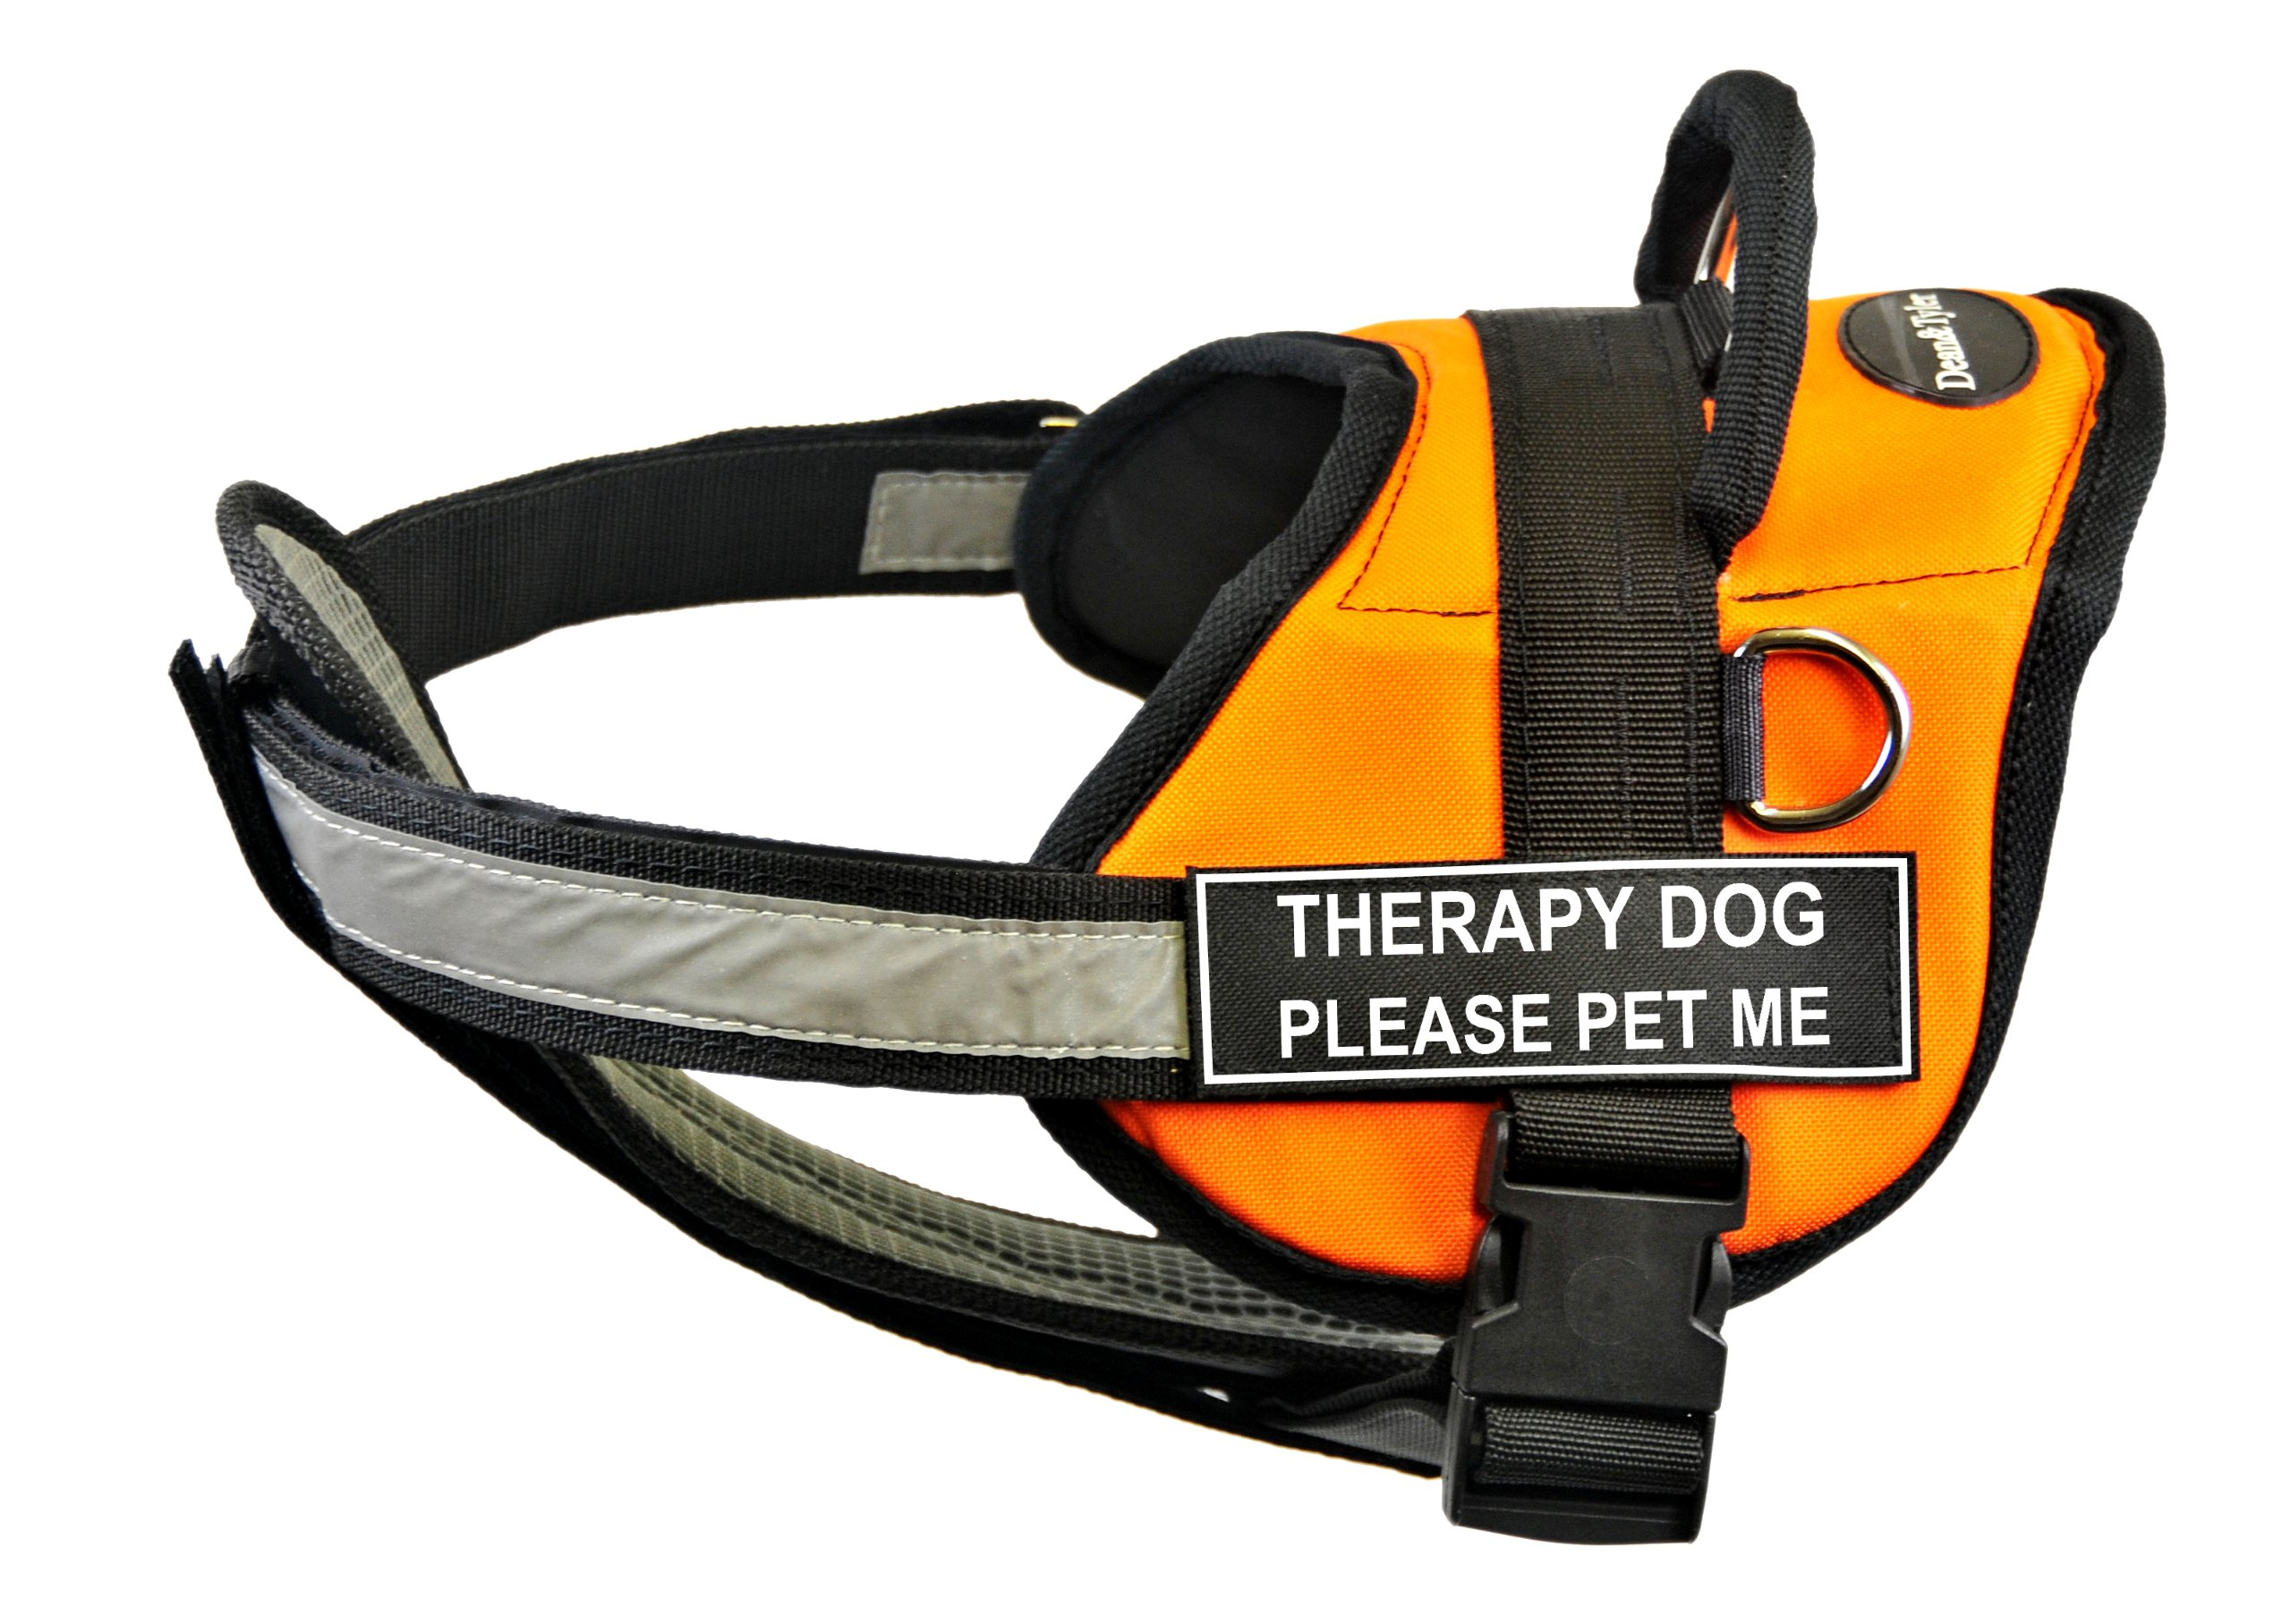 Dean & Tyler 28-Inch to 38-Inch Therapy Dog Please Pet Me Harness with Padded Reflective Chest Straps, Medium, Orange/Black